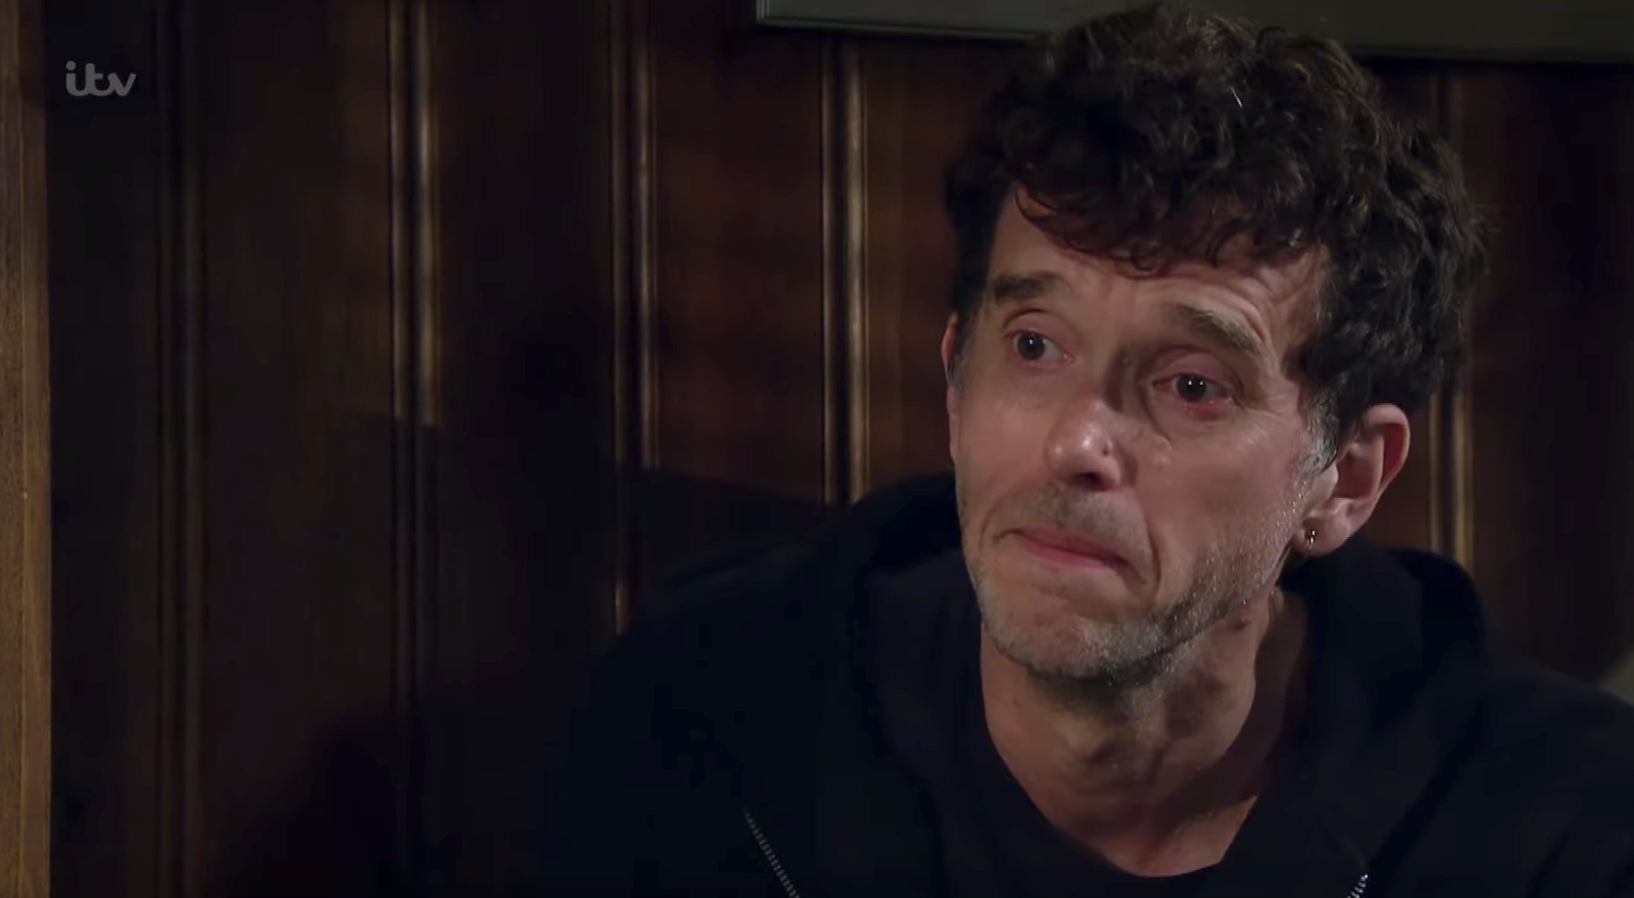 Emmerdale's Marlon Dingle ends marriage with Jessie after she cheats with ex Al Chapman